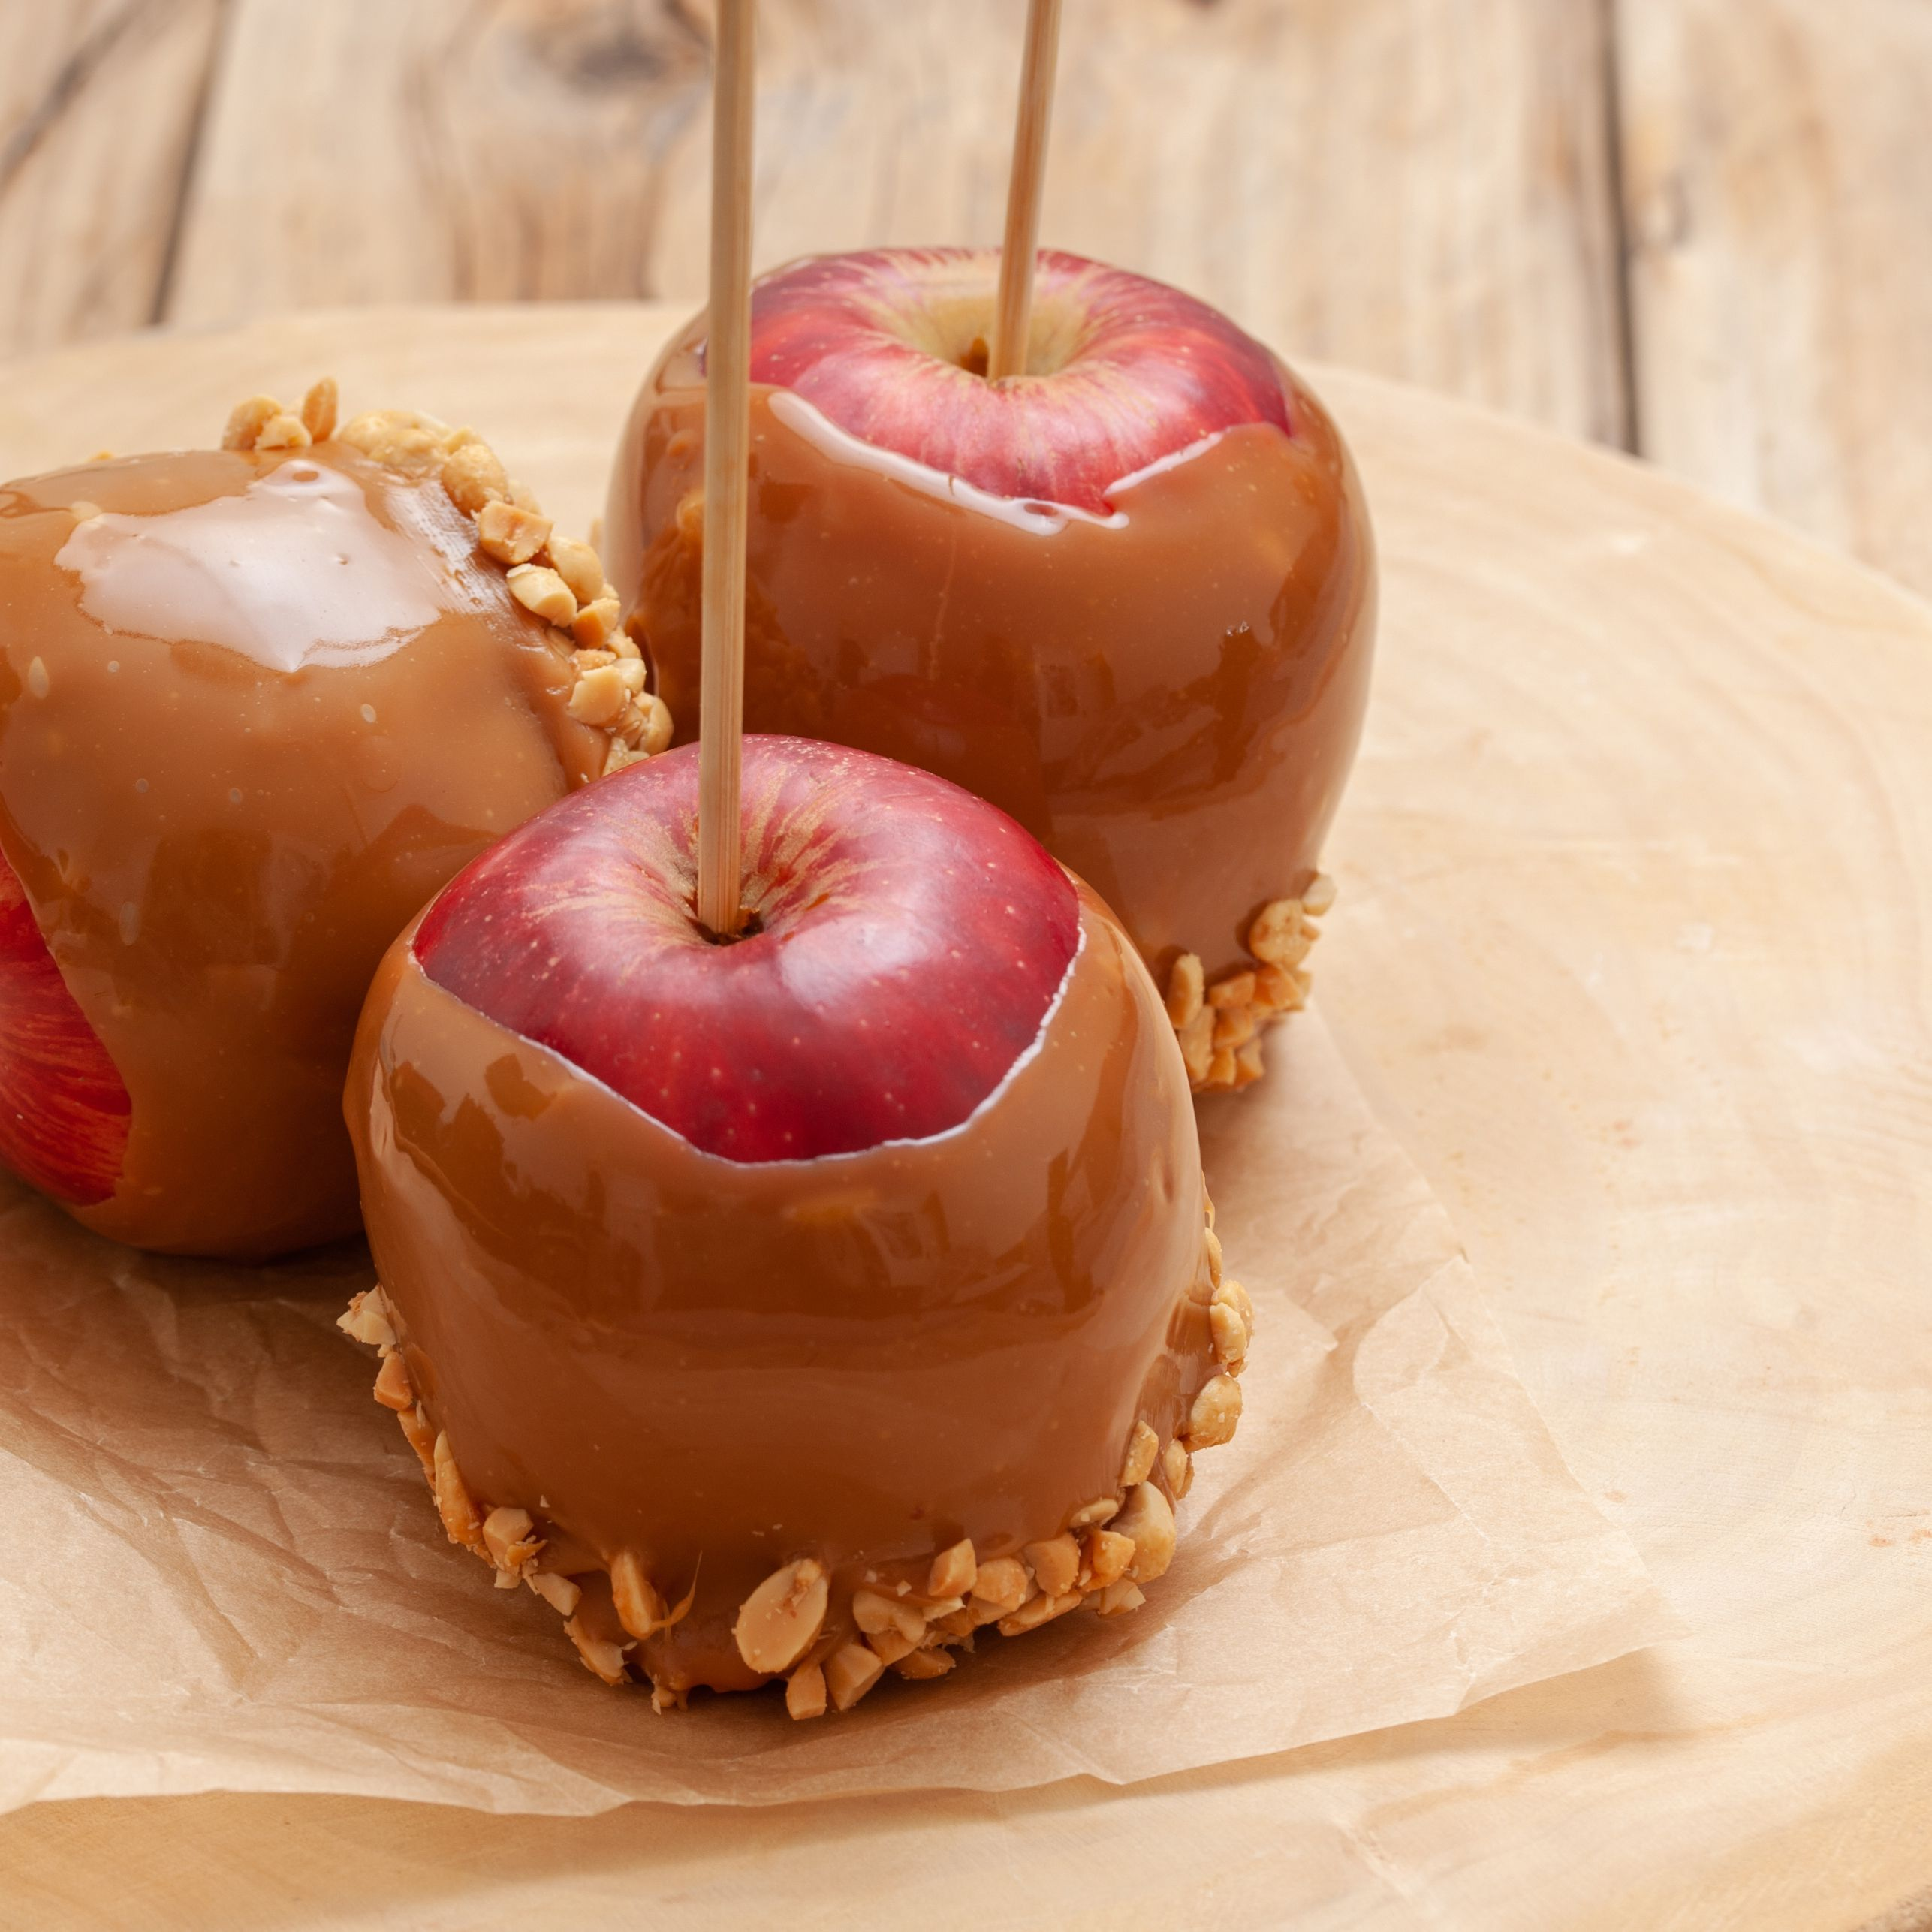 Homemade Caramel Apple Recipe